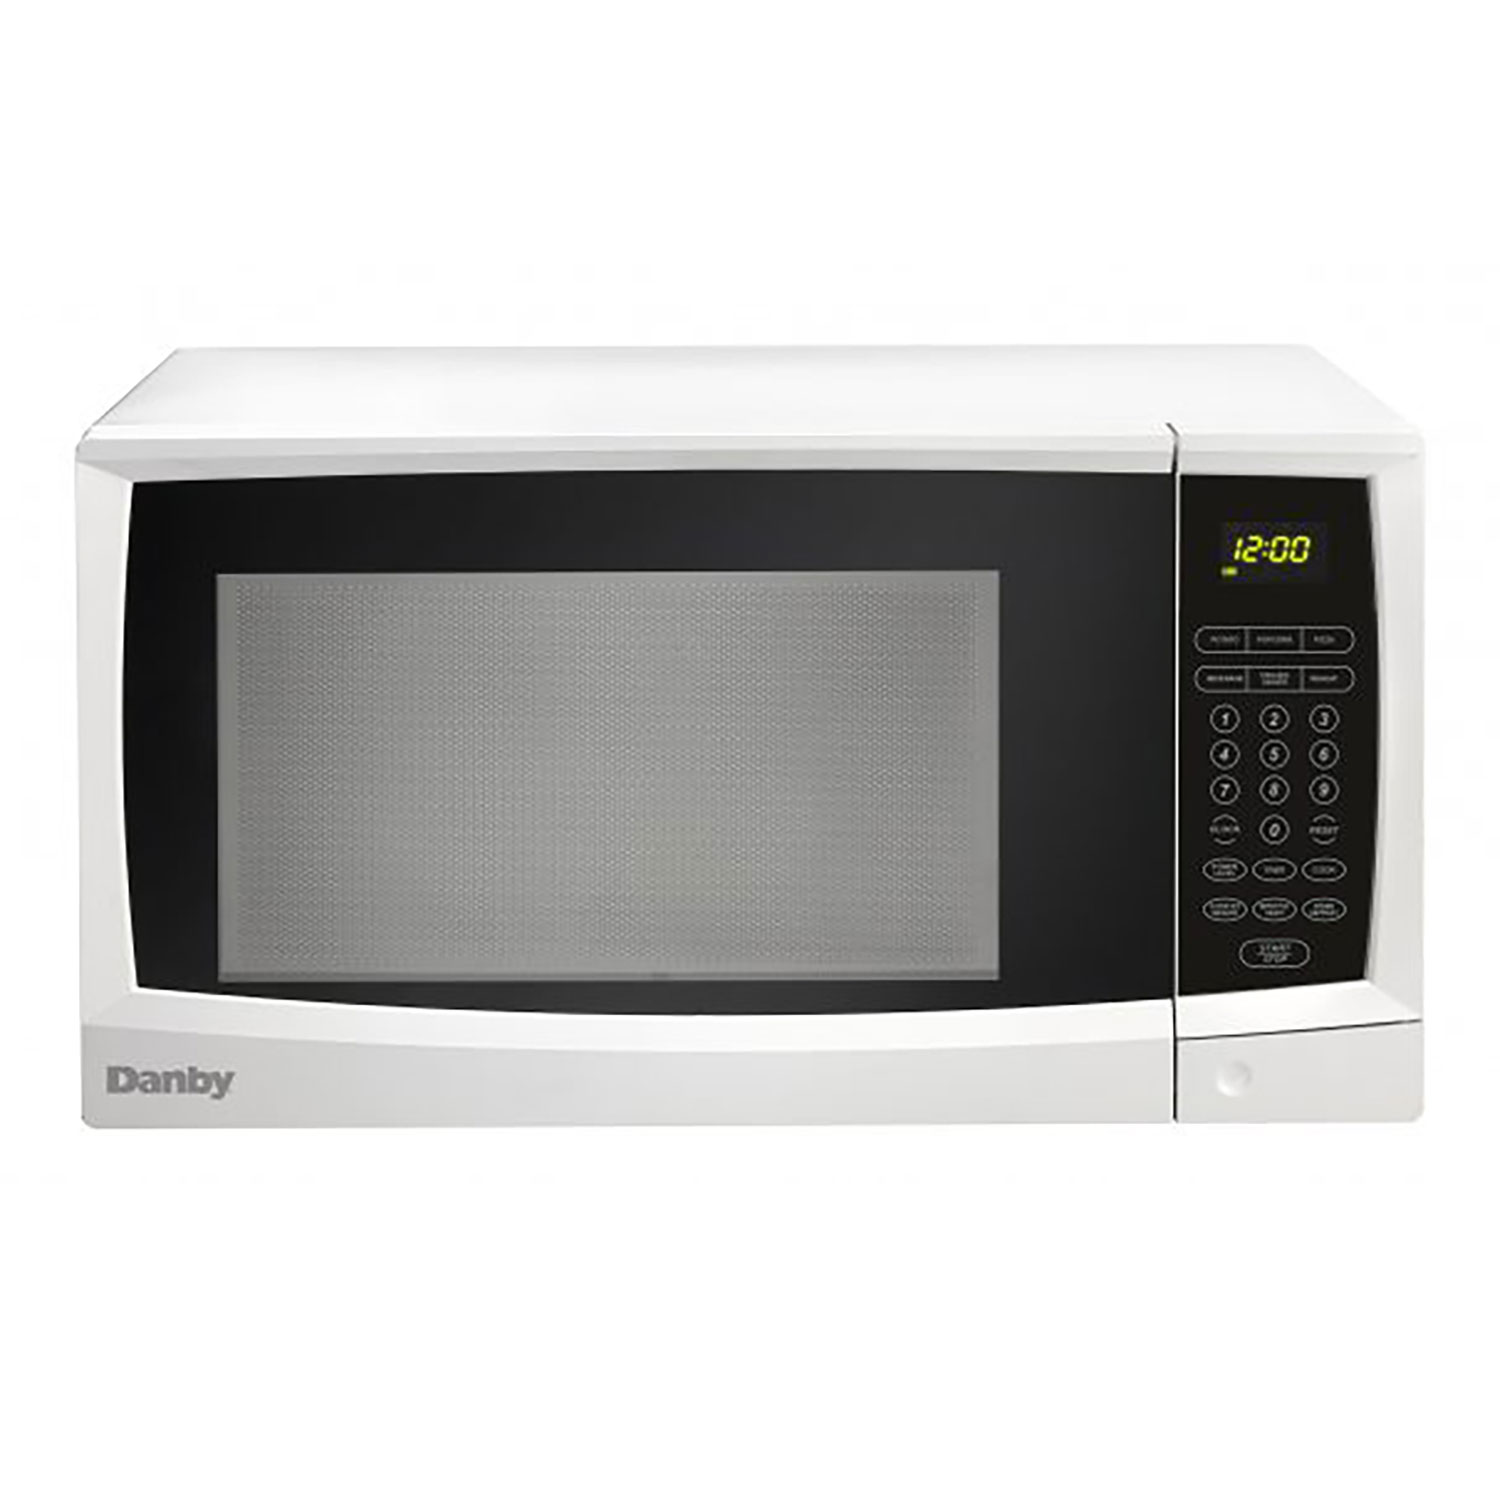 Danby 1 Cubic Feet 1000 Watt Compact Kitchen Counter Top Microwave Oven White